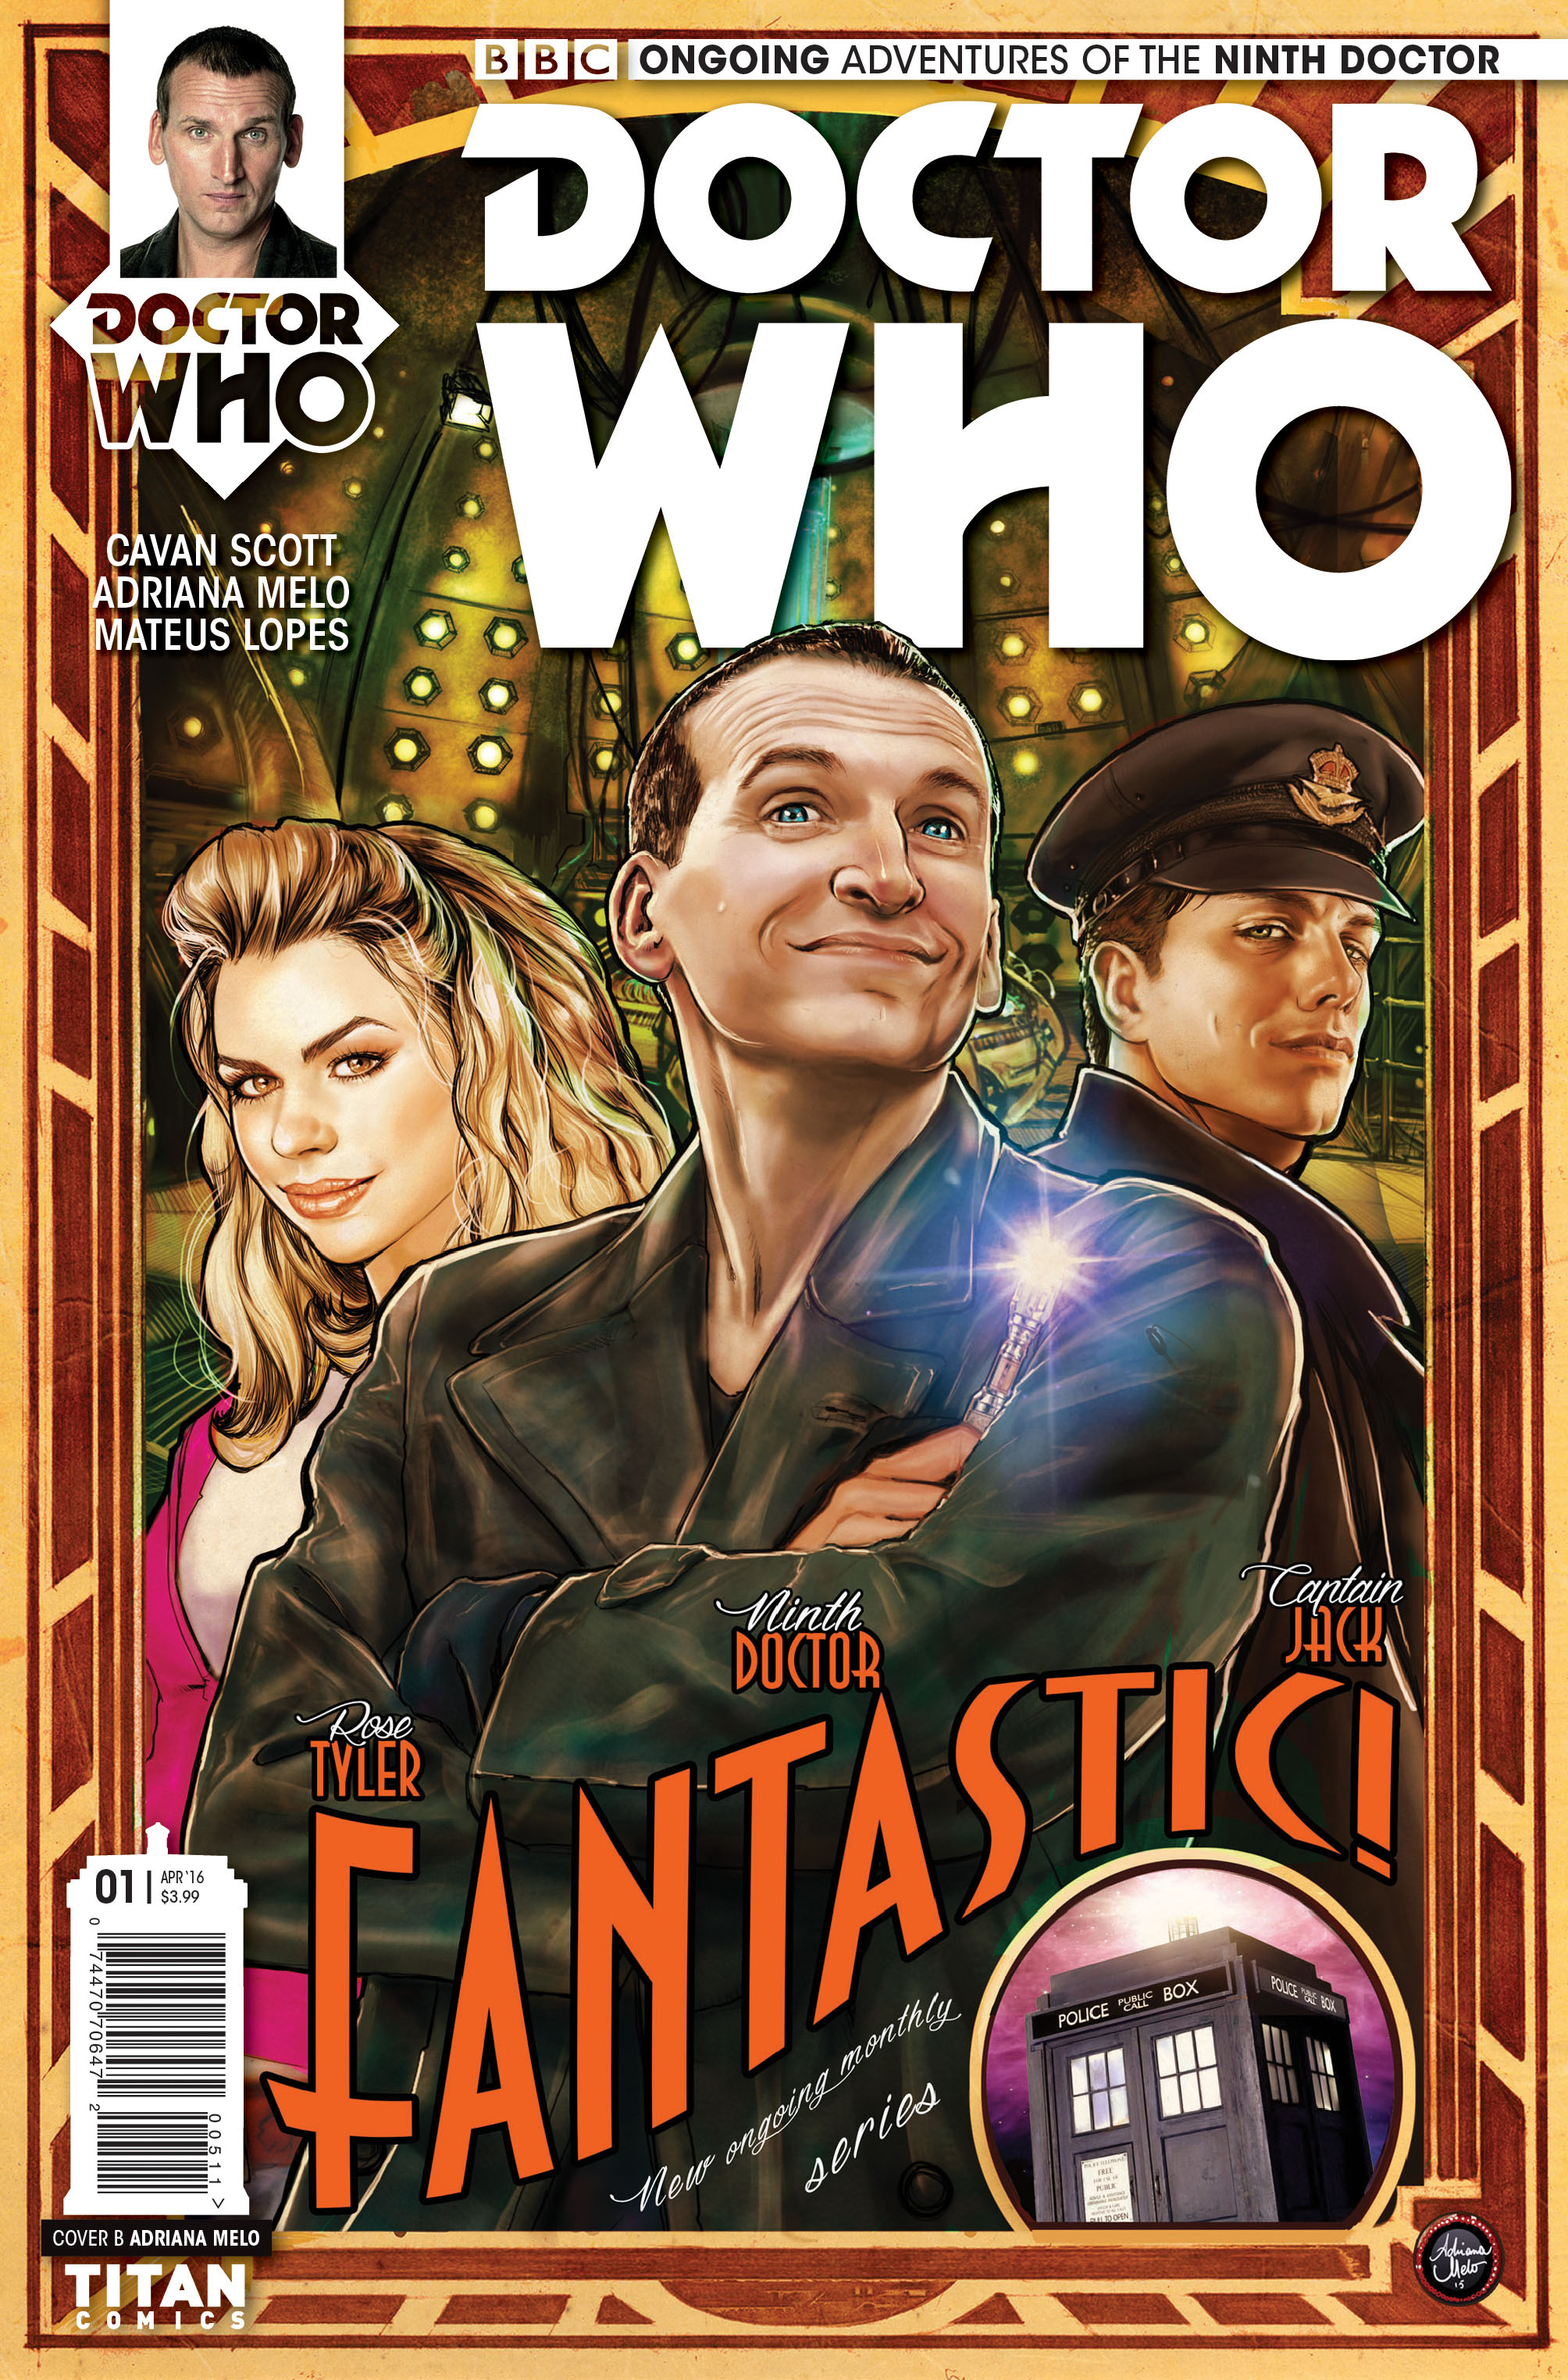 Doctor Who: The Ninth Doctor #1 Cover